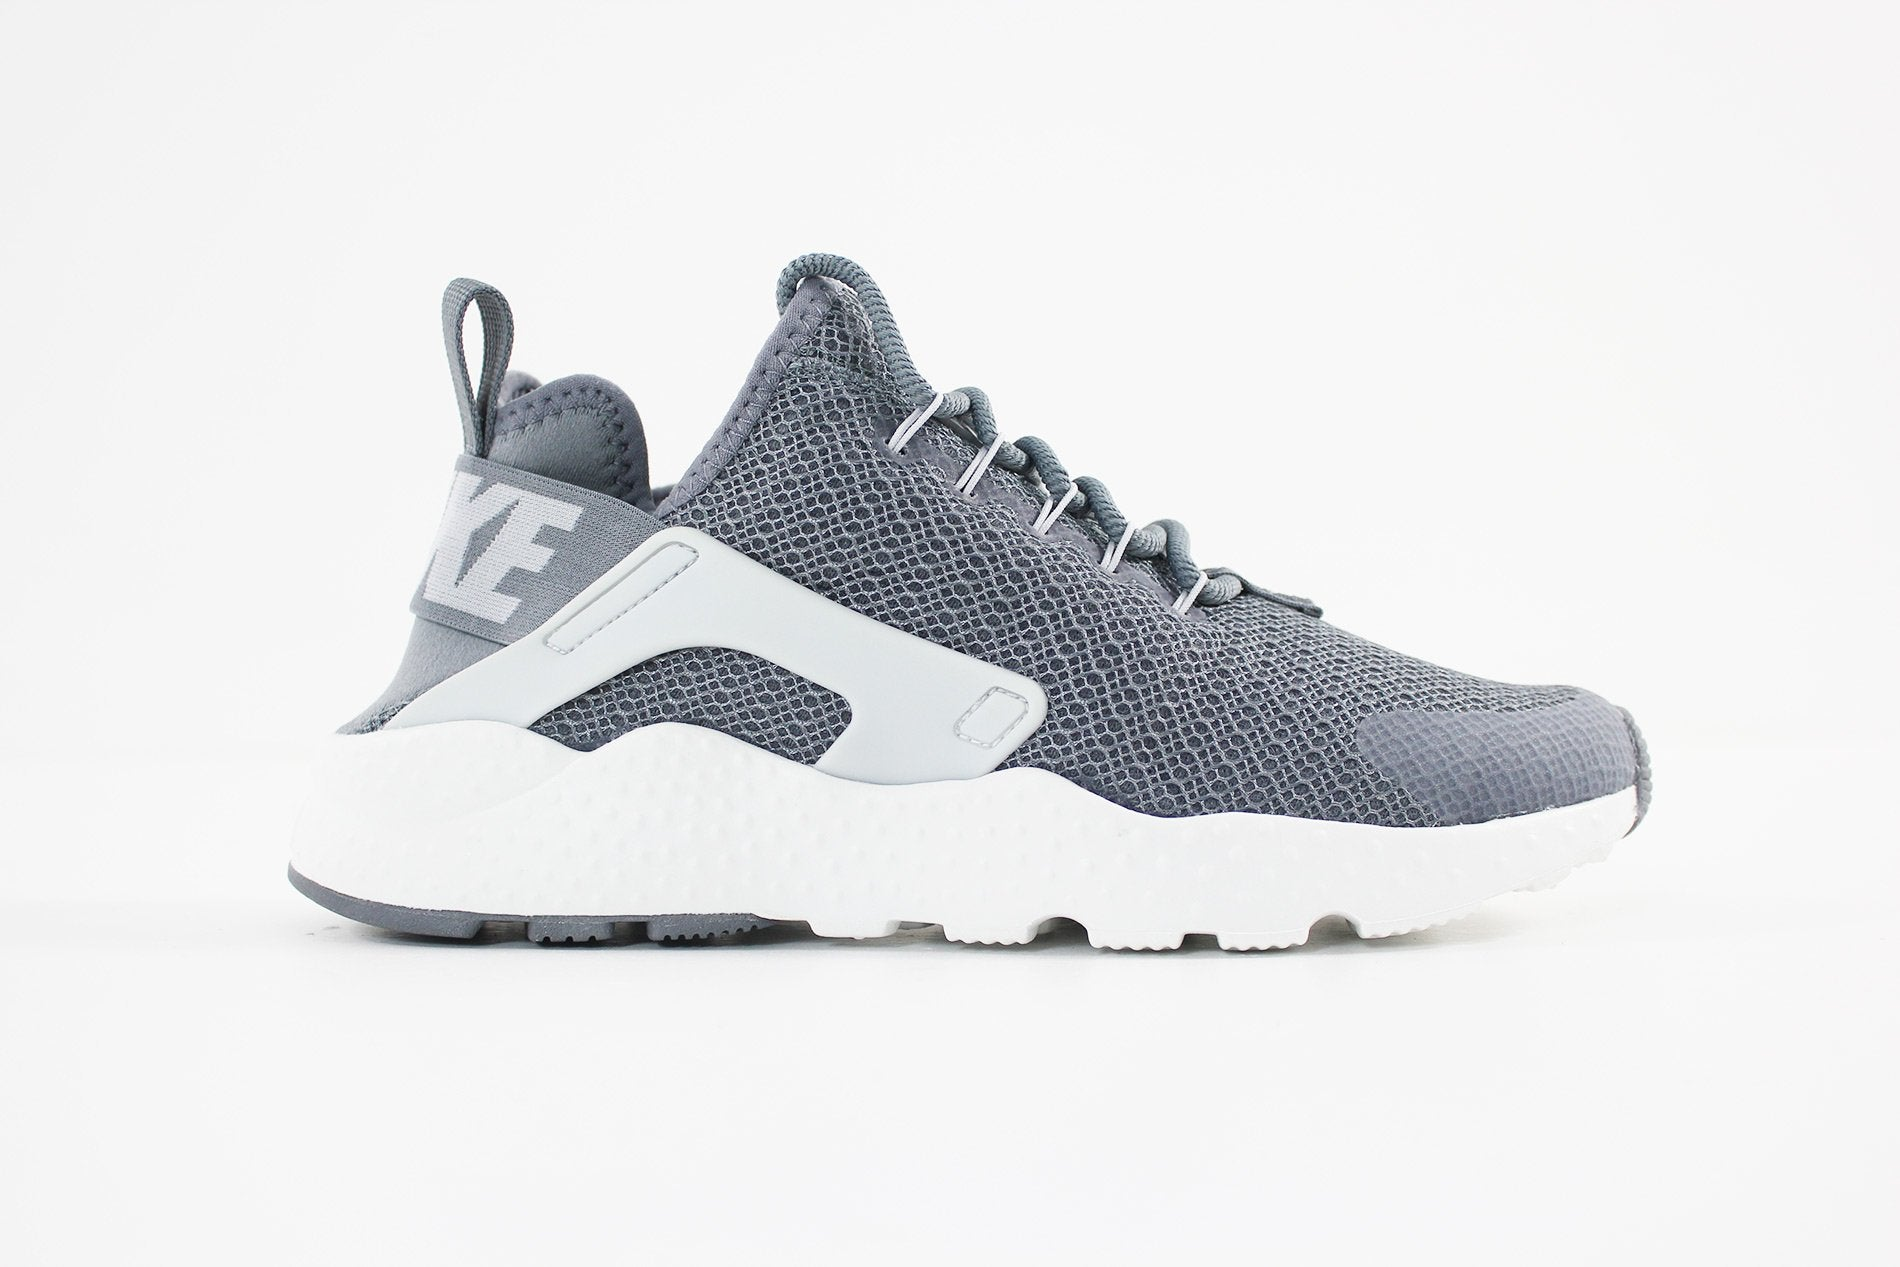 online store f760f a3c81 Nike - Air Huarache Run Ultra (COOL GREY PURE PLATINUM-SUMMIT WHITE). Nike  - Air Huarache Run Ultra (COOL GREY PURE PLATINUM-SUMMIT WHITE)